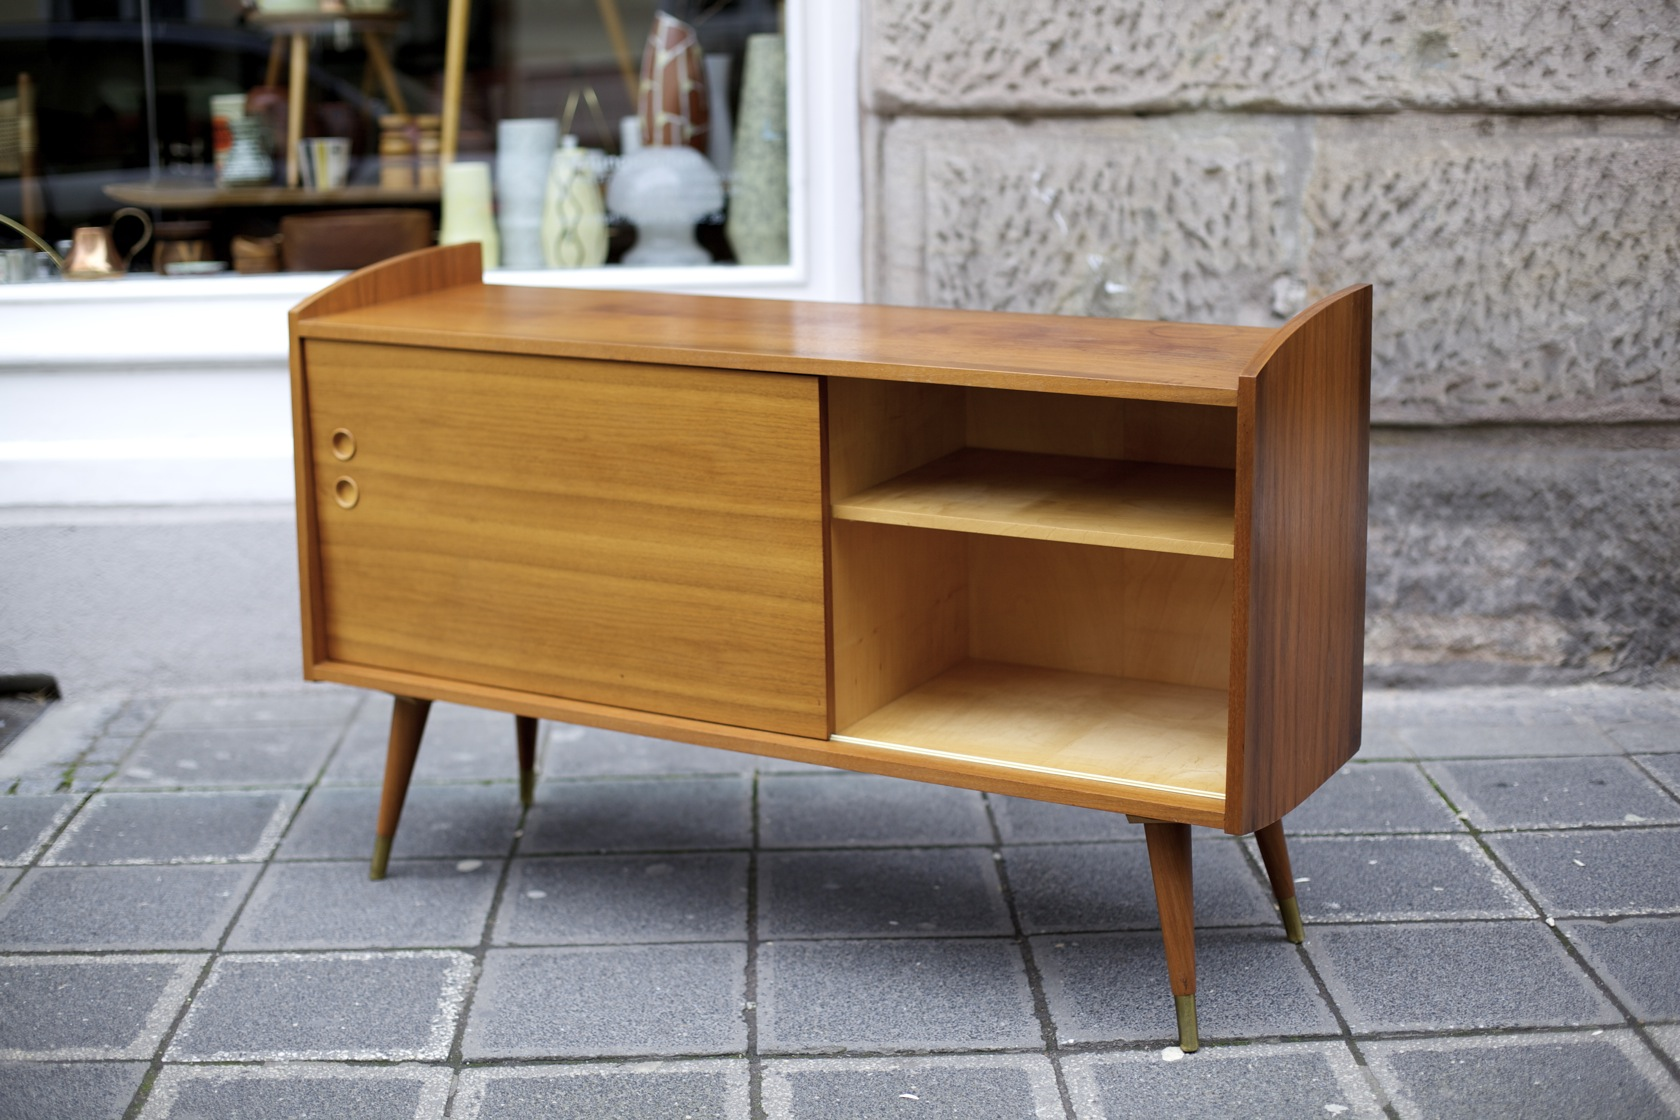 midcentury sideboard mit schiebet r raumwunder vintage wohnen in n rnberg. Black Bedroom Furniture Sets. Home Design Ideas